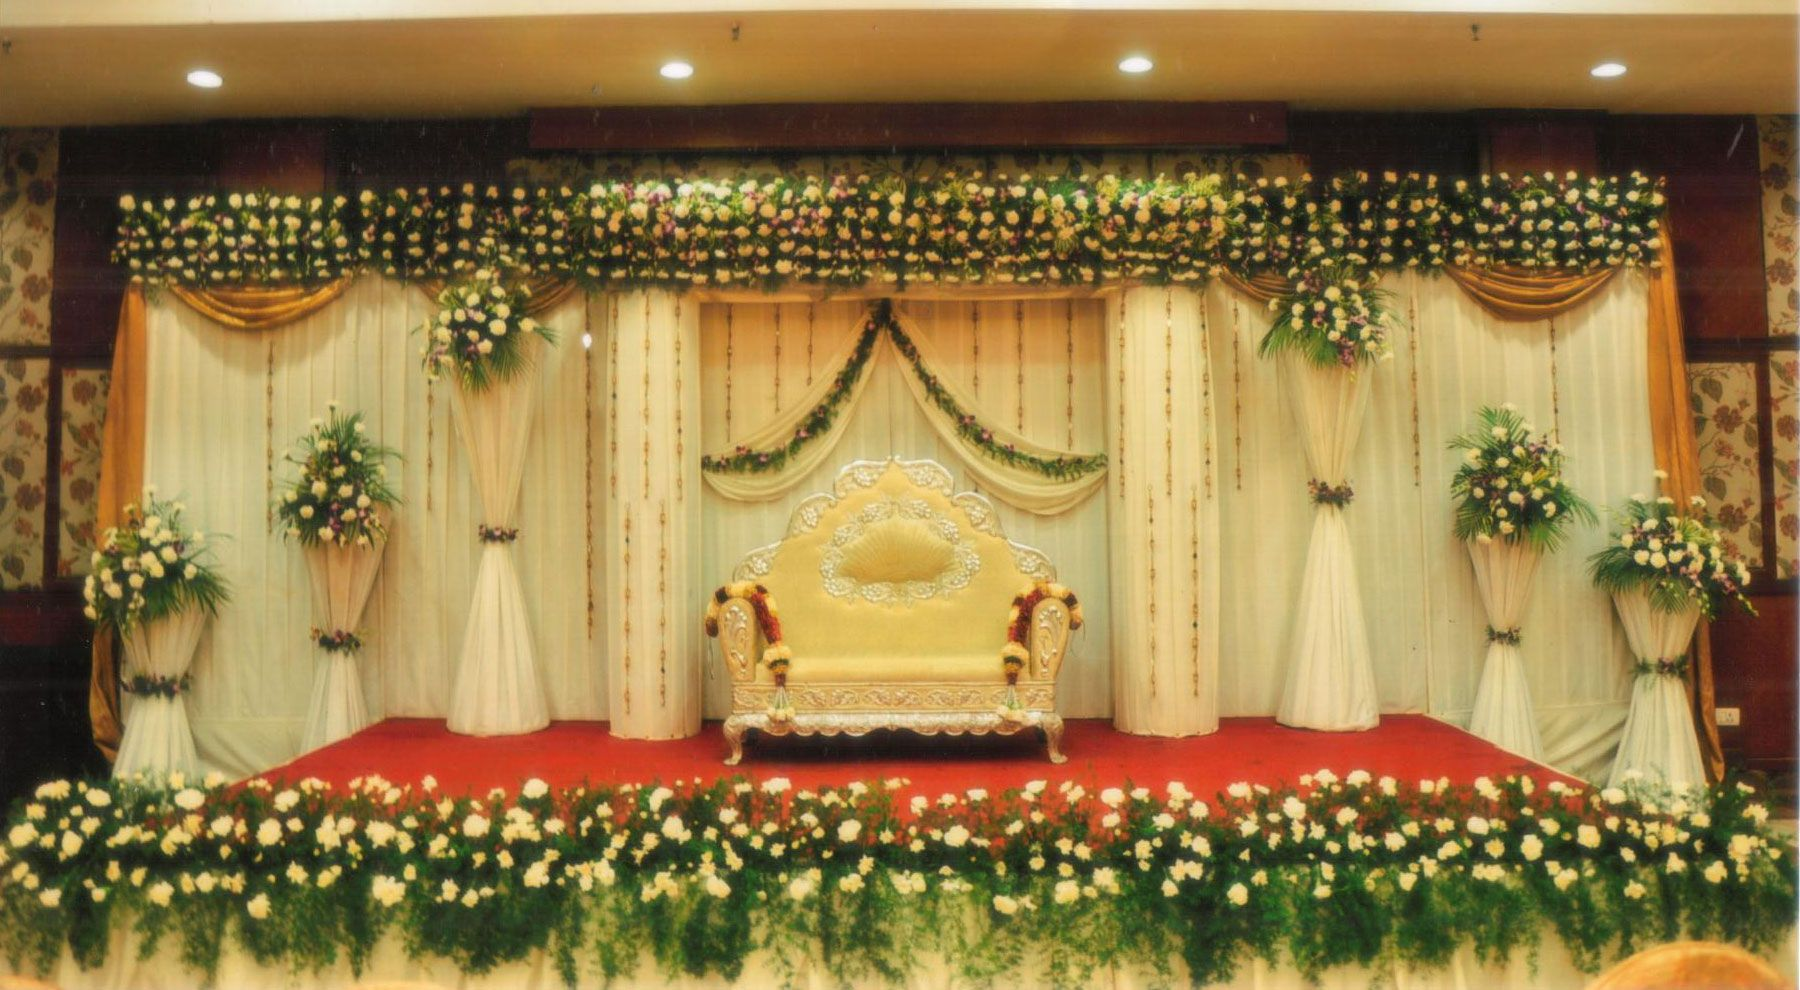 wedding stage decoration wedding decorations natural decorations in image list top decoration favorites home and outdoor furniture designsnatural - Stage Decorations